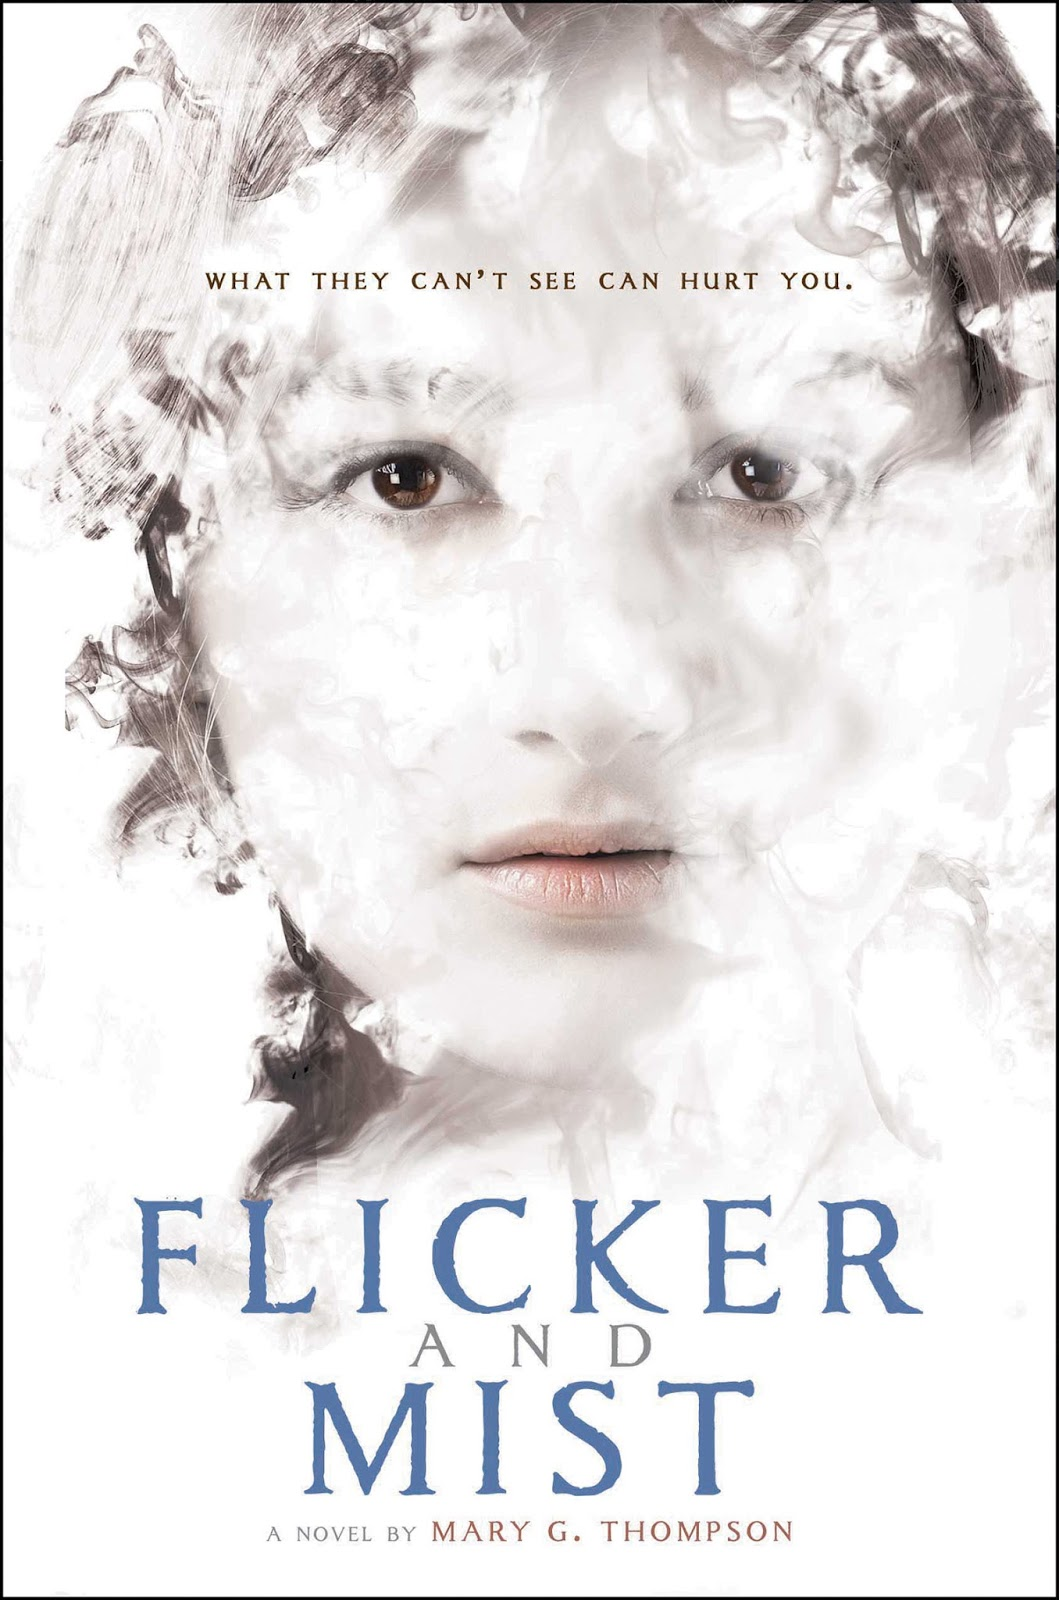 Title: Flicker And Mist Author: Mary G Thompson Pub Date: January 3,  2017 Publisher: Clarion Books Pages: 384 Formats: Hardcover, Ebook